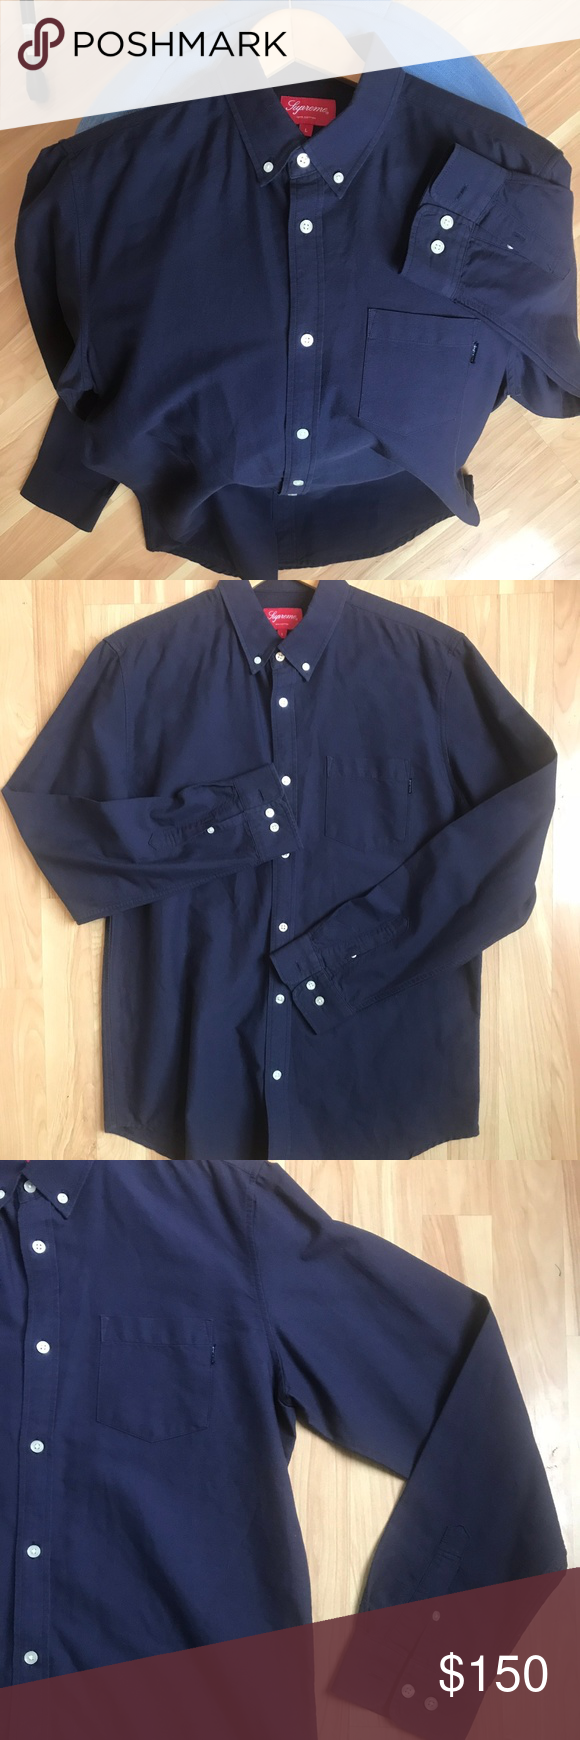 cc1834d256aef5 NWOT Supreme Oxford Button Down In Navy Blue NWOT Supreme button down in  Navy with white buttons. Authentic button up from world famous Supreme  brand based ...